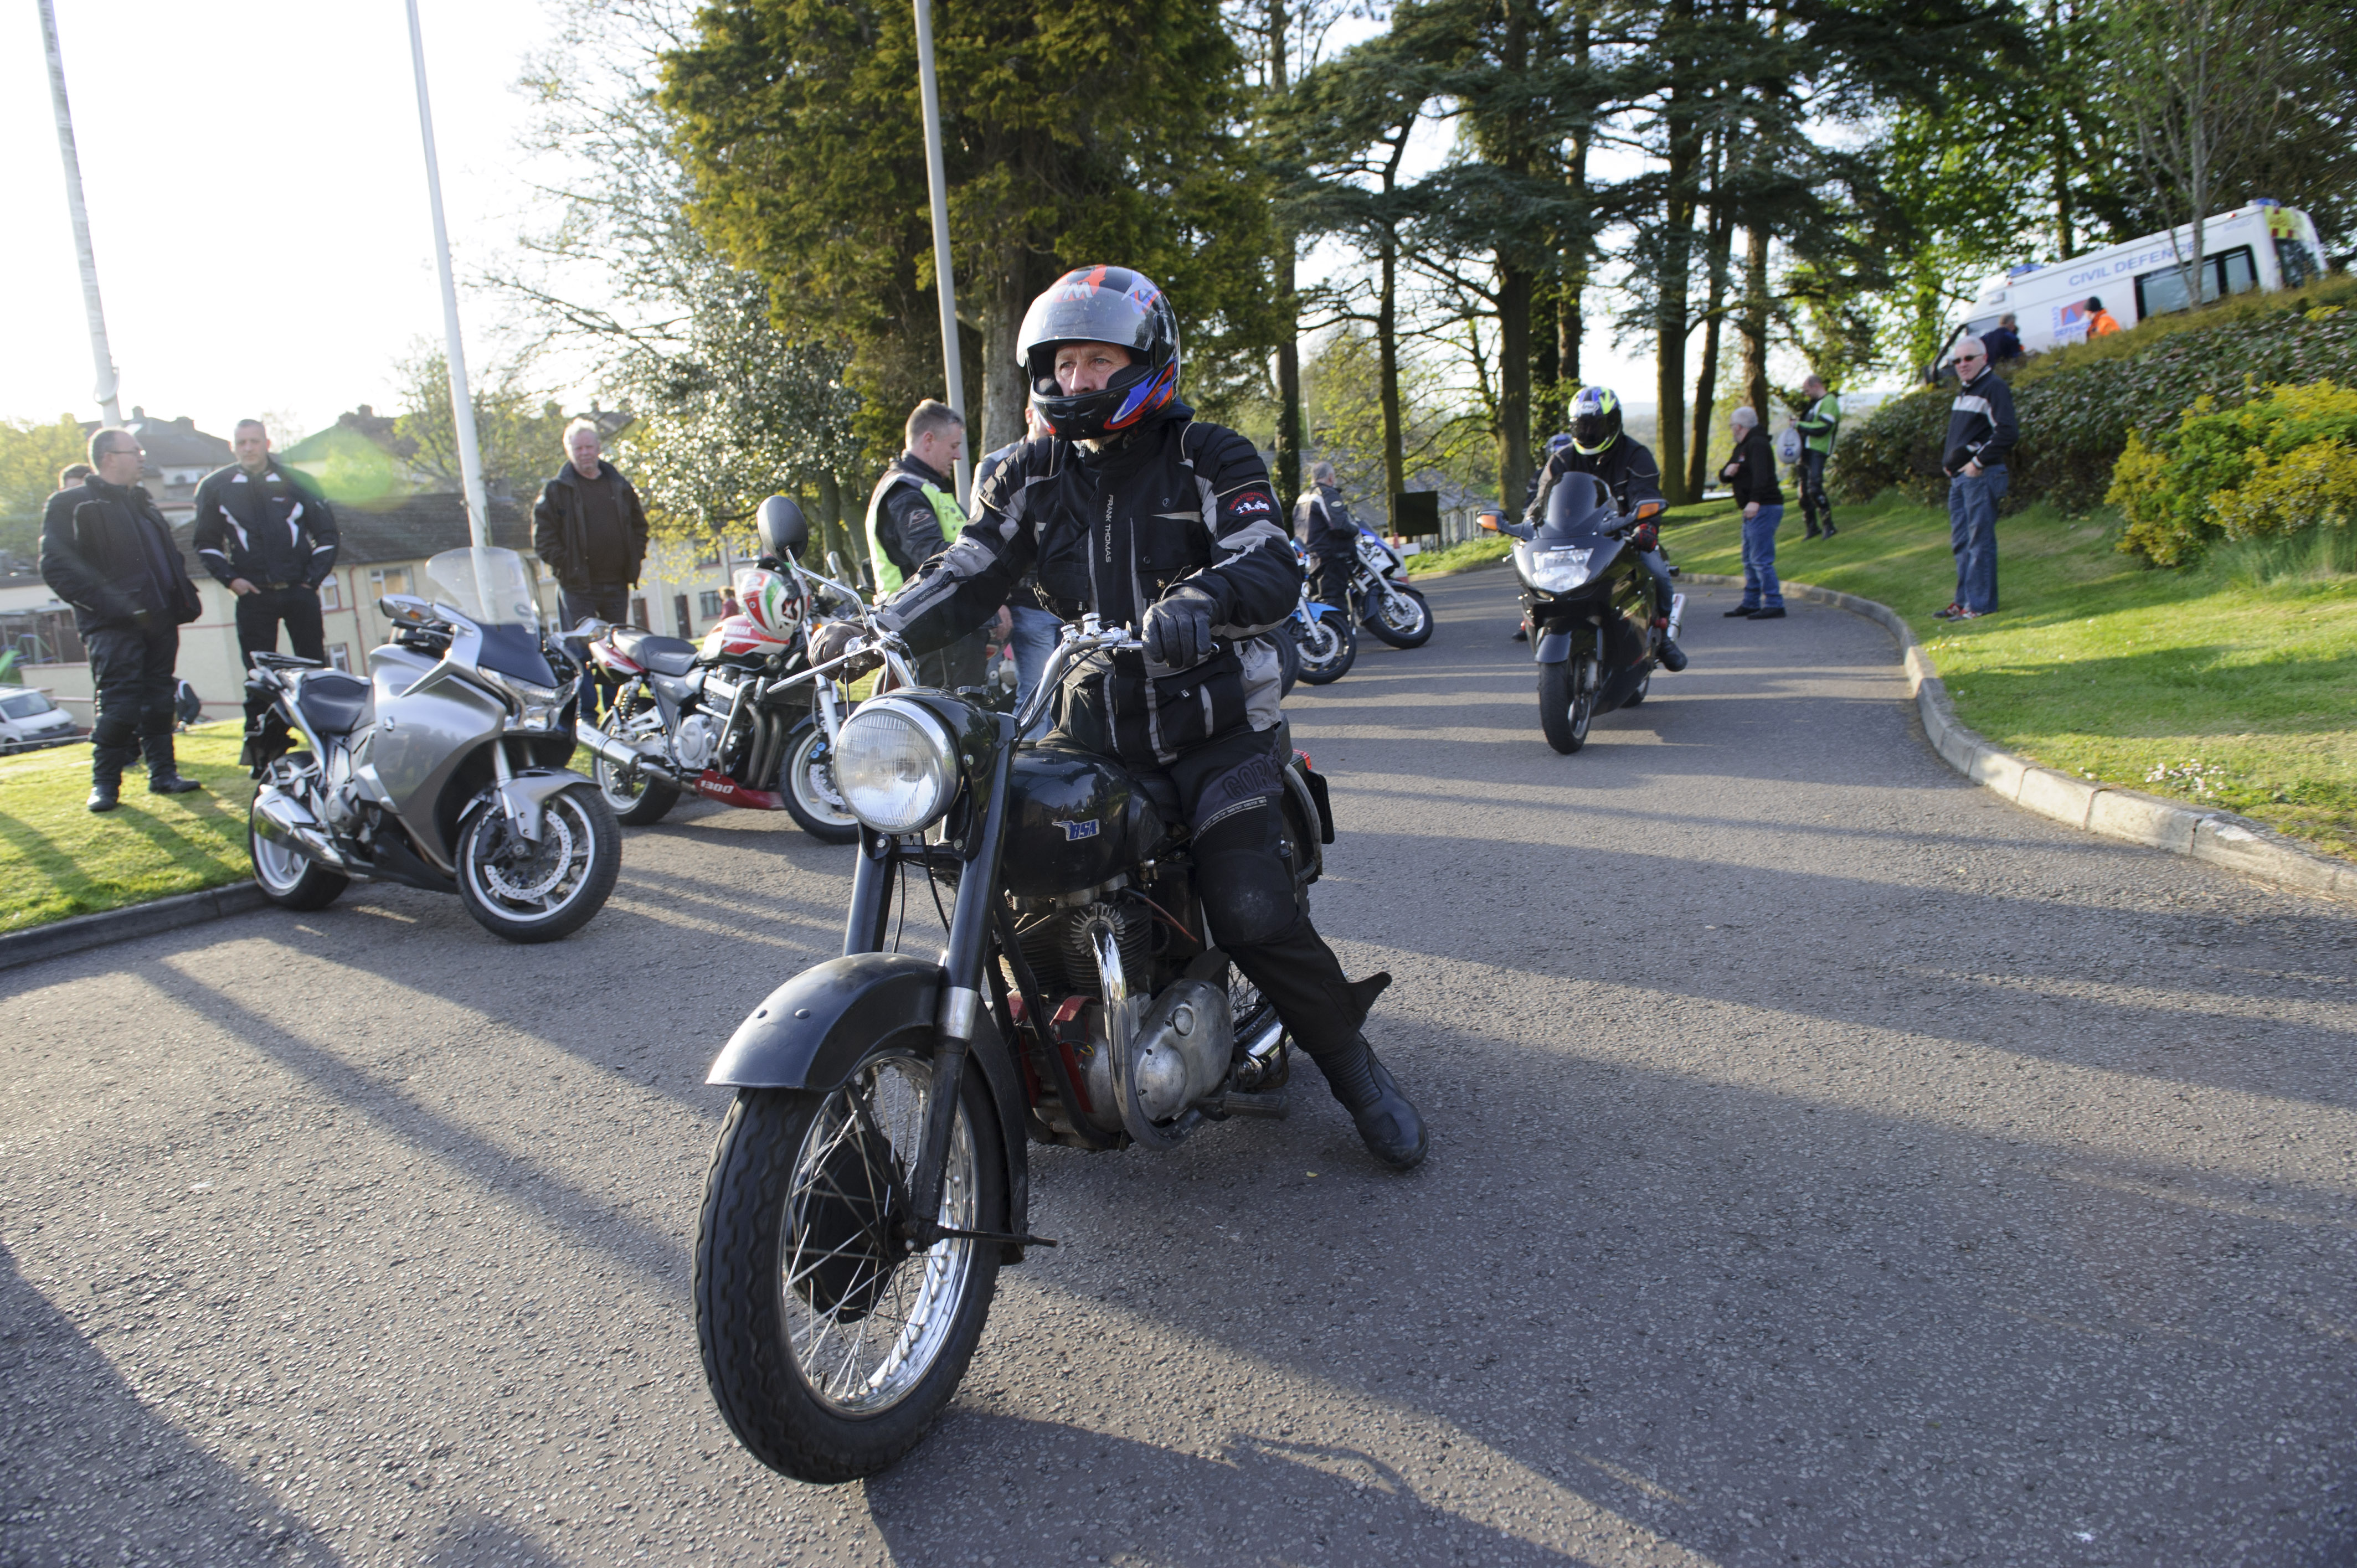 One of the patrons of the mass arriving by motorbike. ©Rory Geary/The Northern Standard